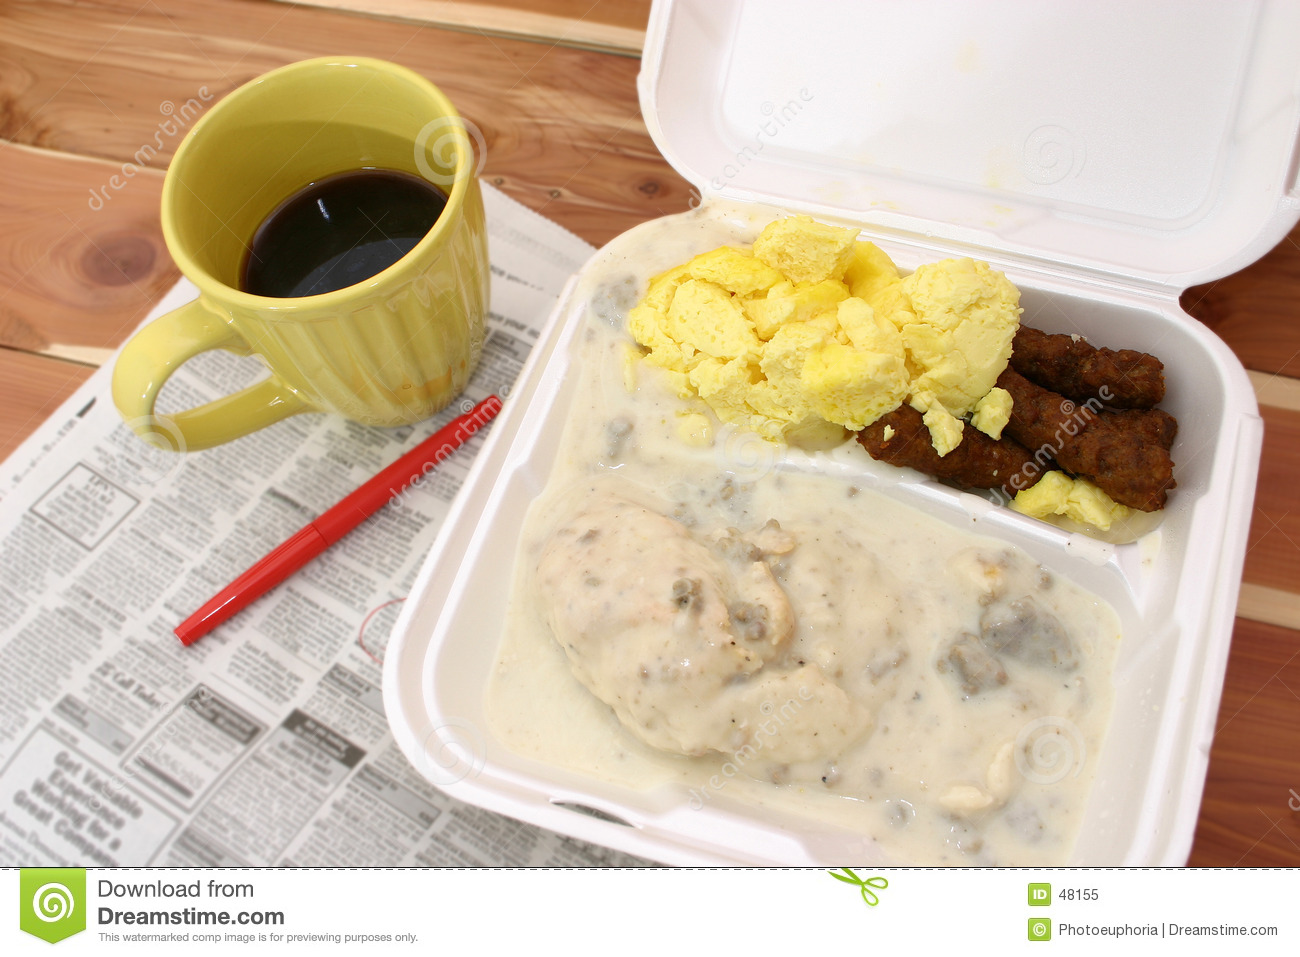 Takeout frukost